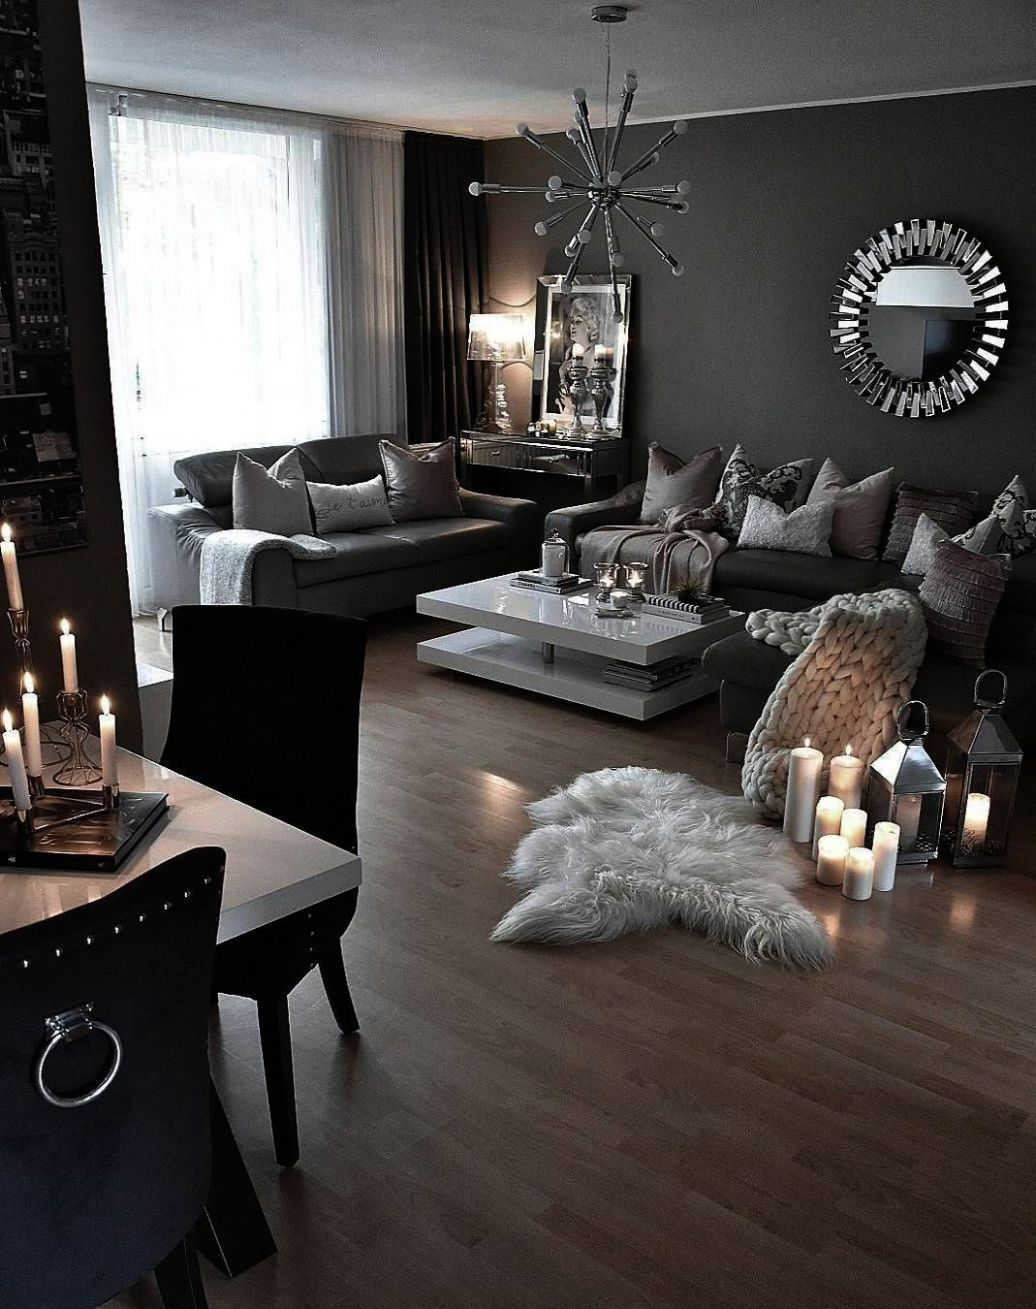 Interior Design Ideas For Living Room In Kenya - living room ideas kenya